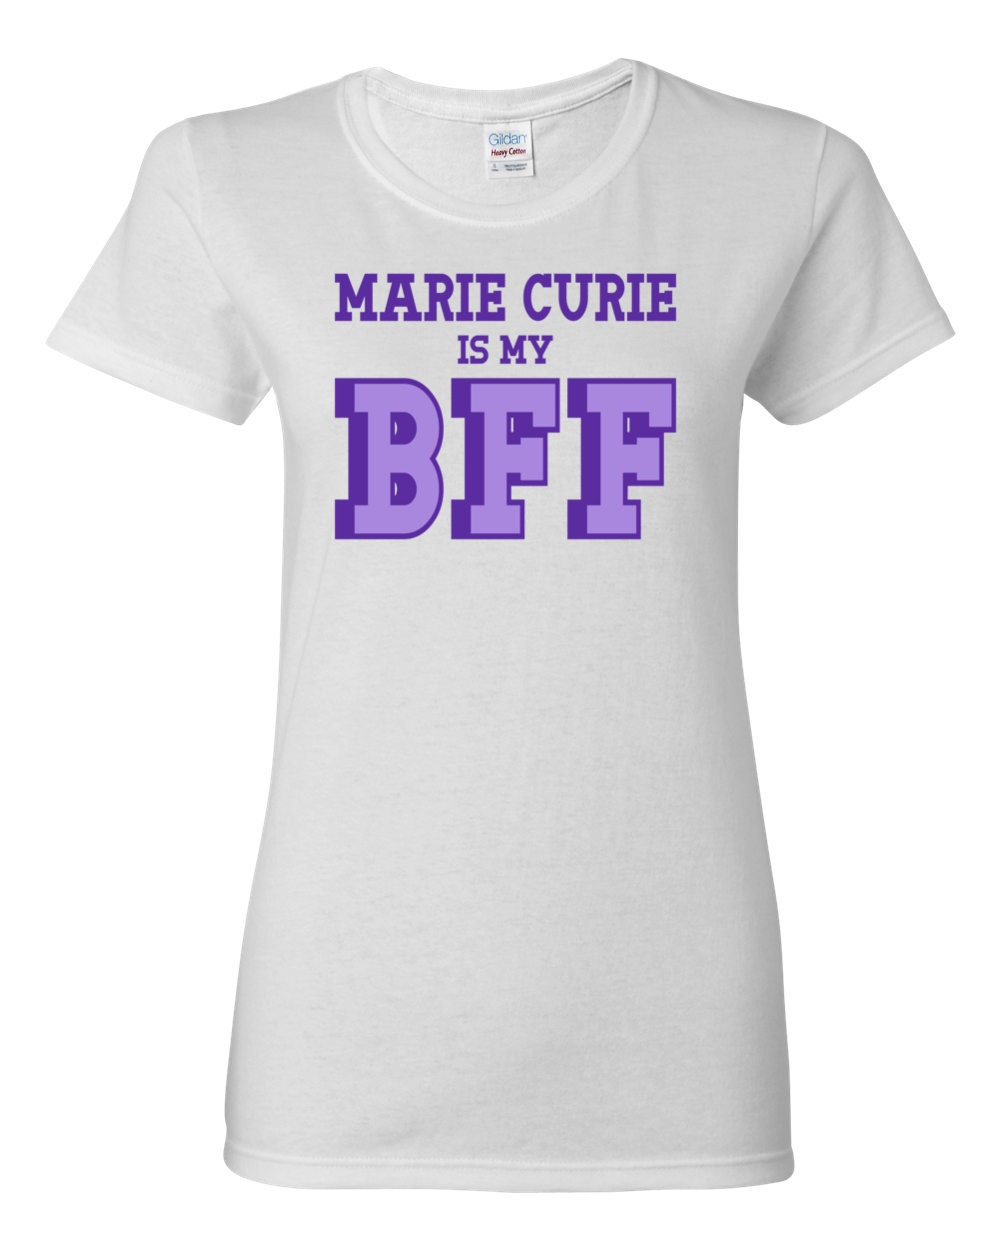 Great Women of History - Marie Curie is my BFF Womens History T-shirt